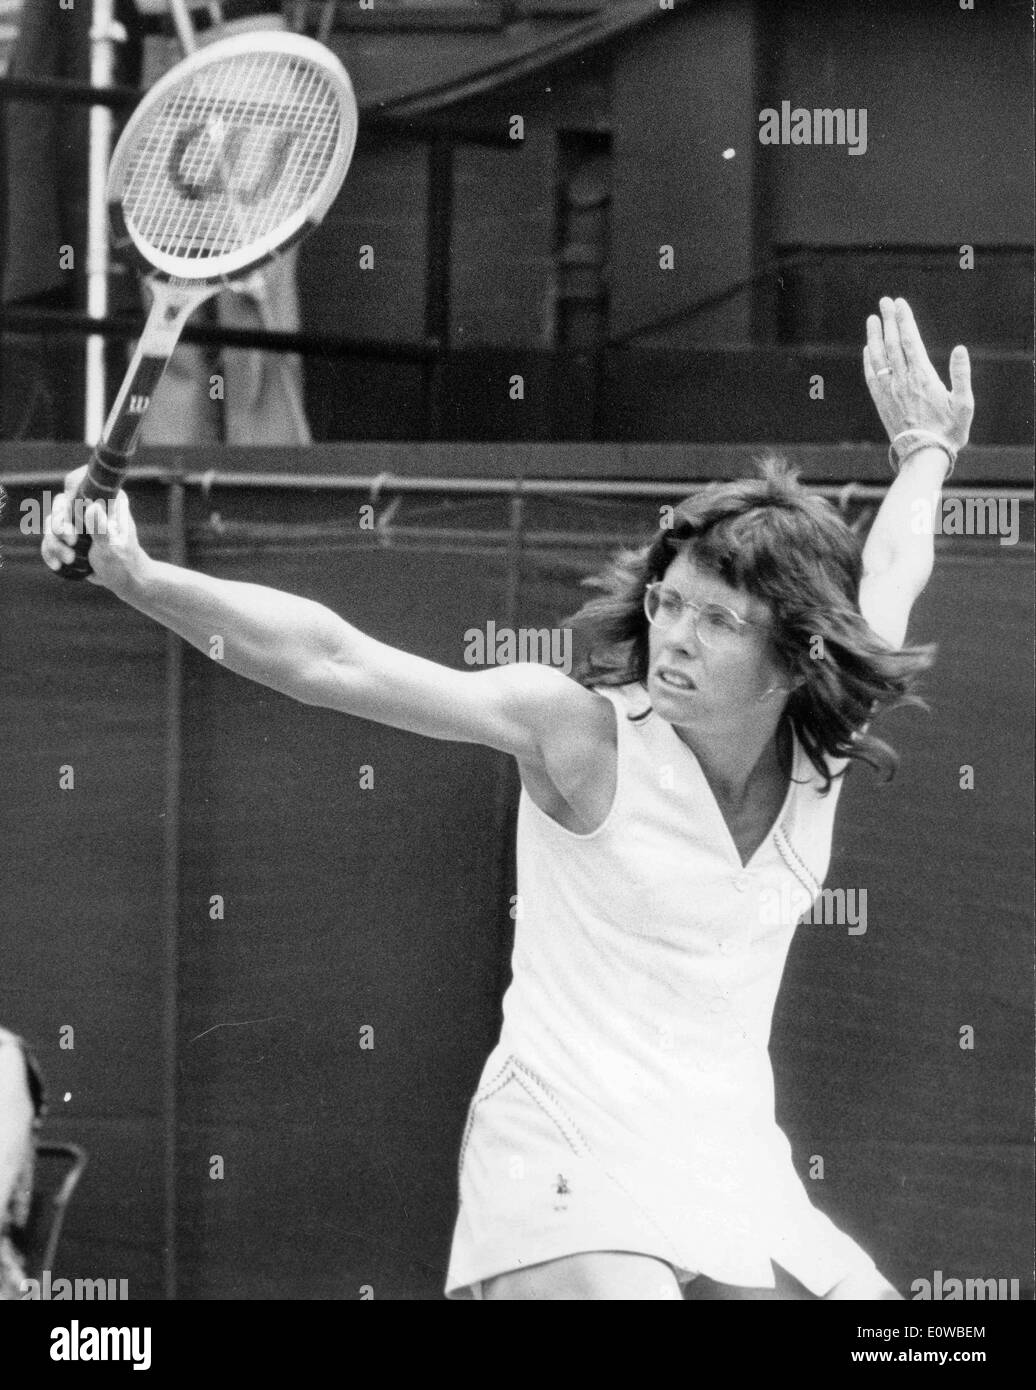 billie jean king - photo #30